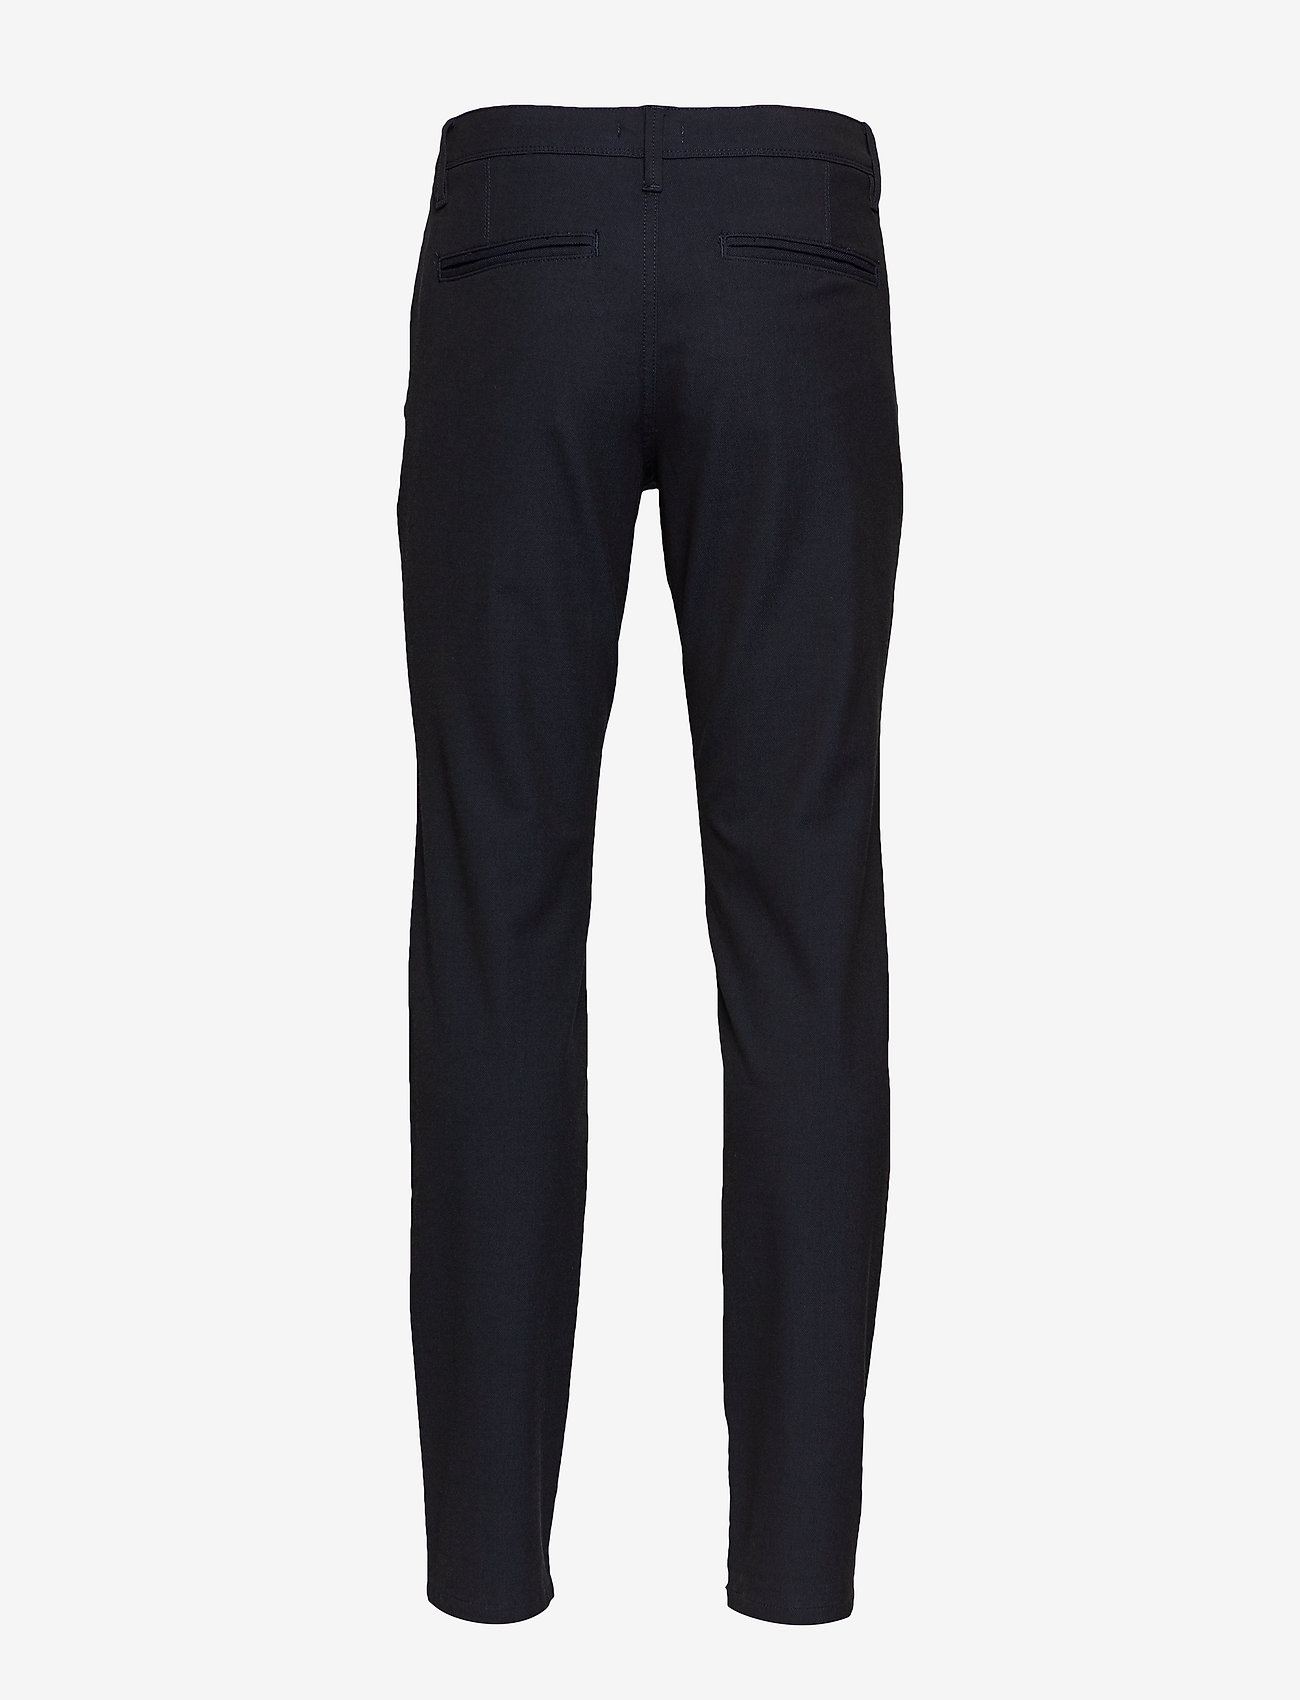 Selected Homme - SLHSLIM-STORM FLEX SMART PANTS W NOOS - suitbukser - dark sapphire - 1